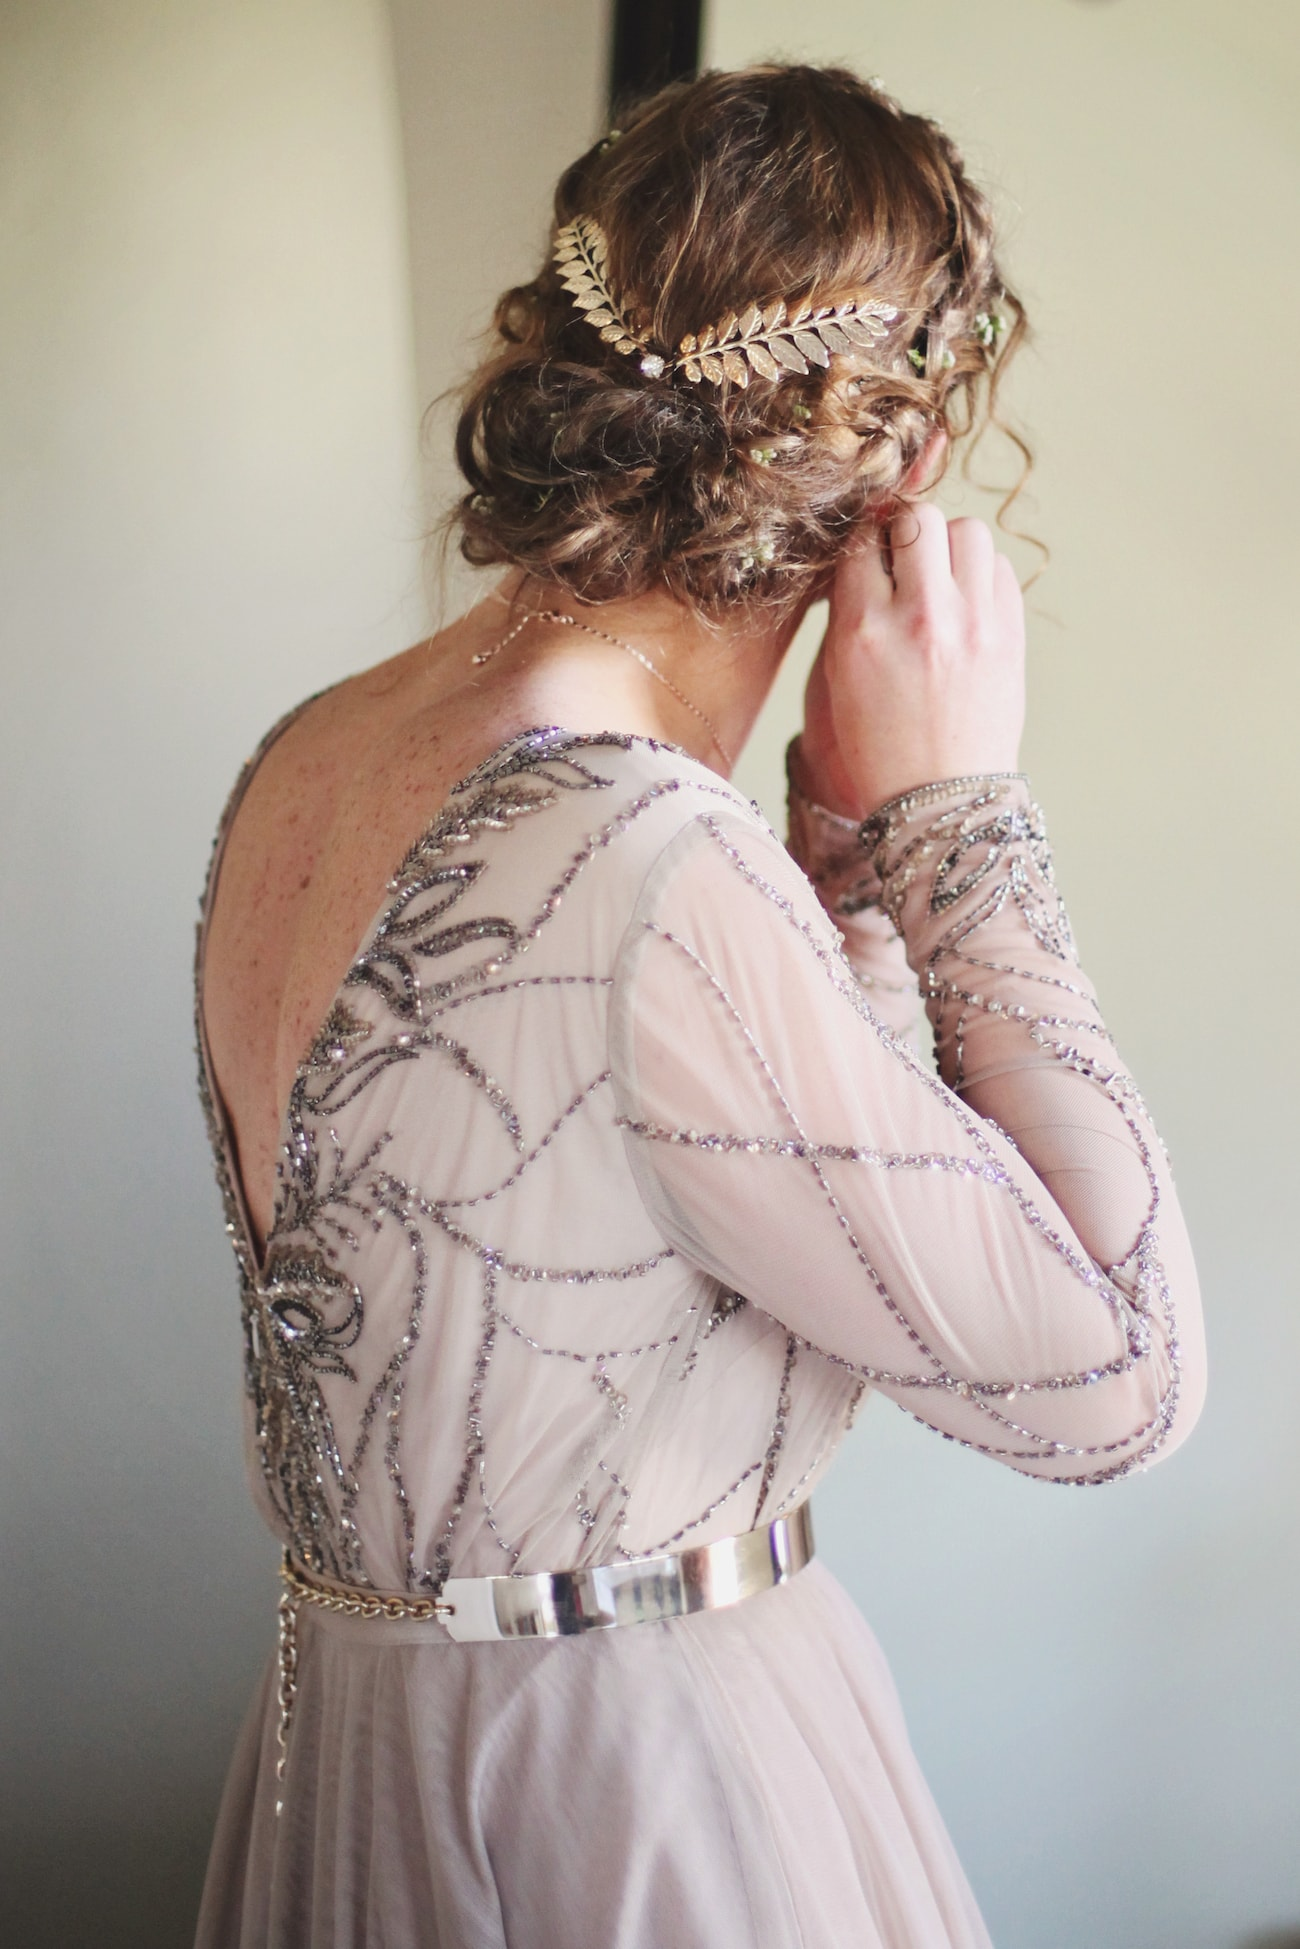 Boho Wedding Dress with Romantic Updo | Credit: Carmen Roberts (3)